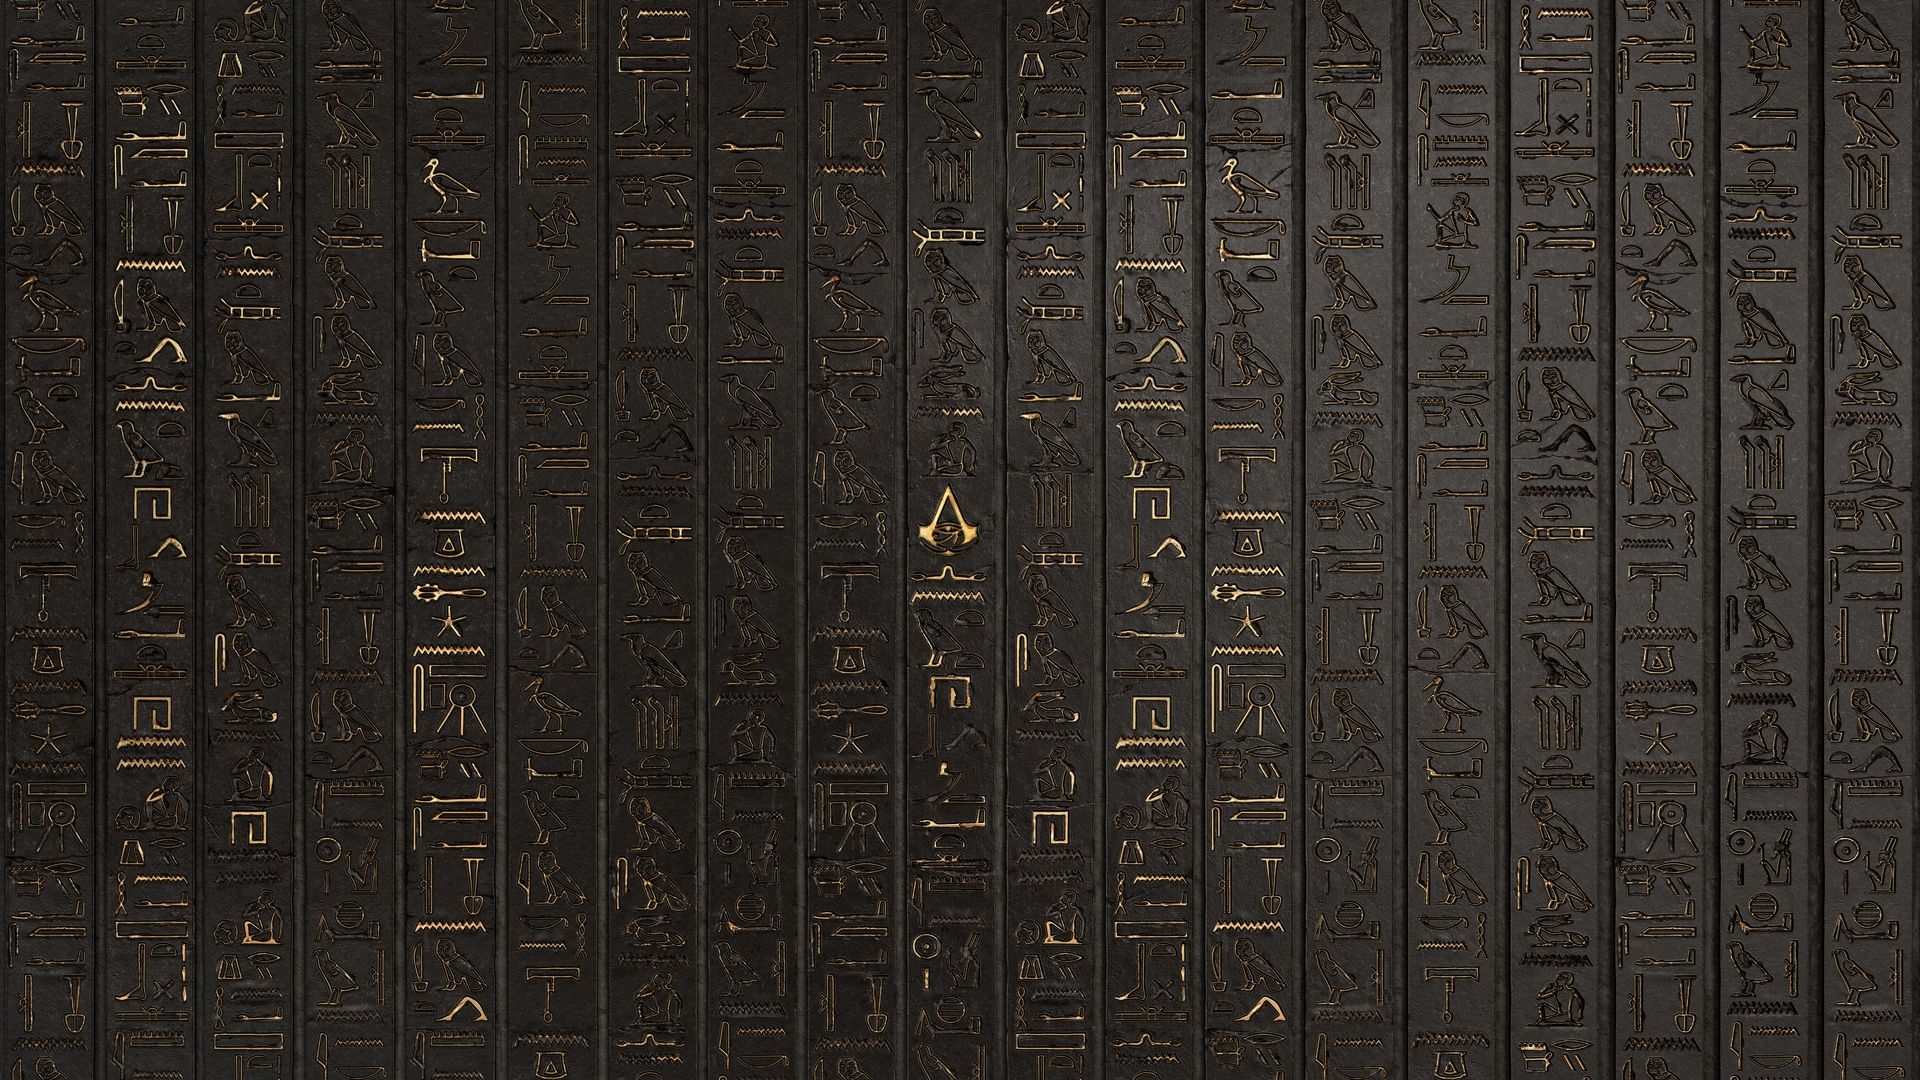 1920x1080 Hieroglyphs Assassins Creed Origins Game Wallpaper | egypt ...